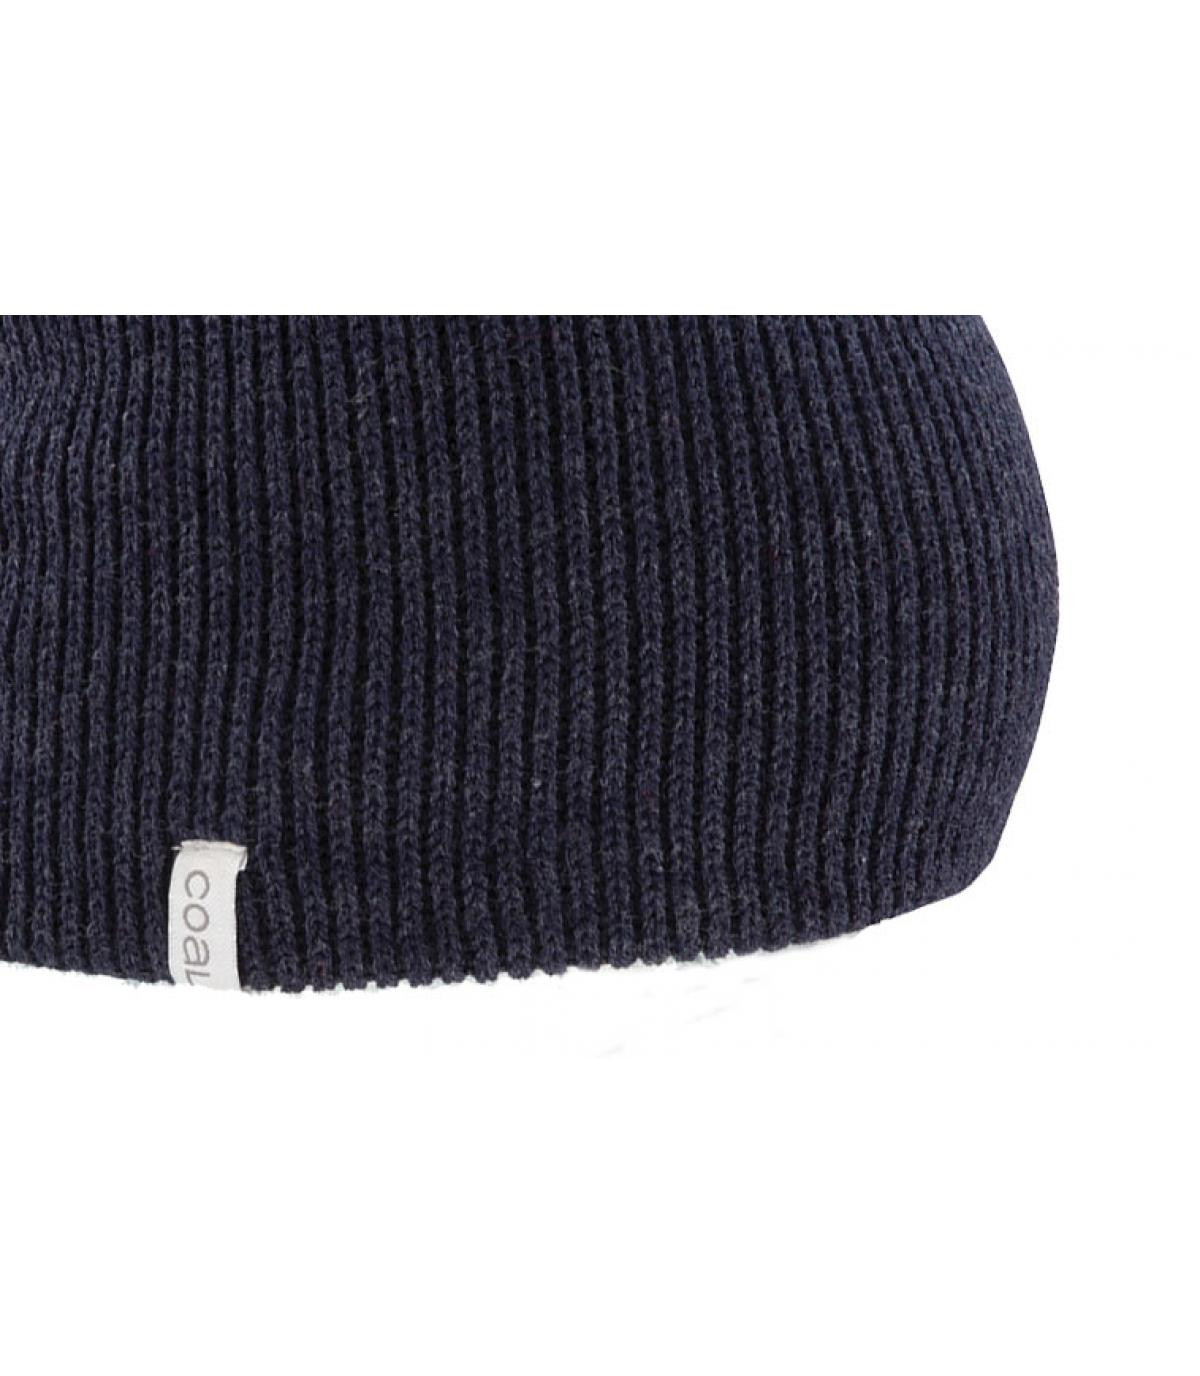 Détails The frena solid heather navy - image 2